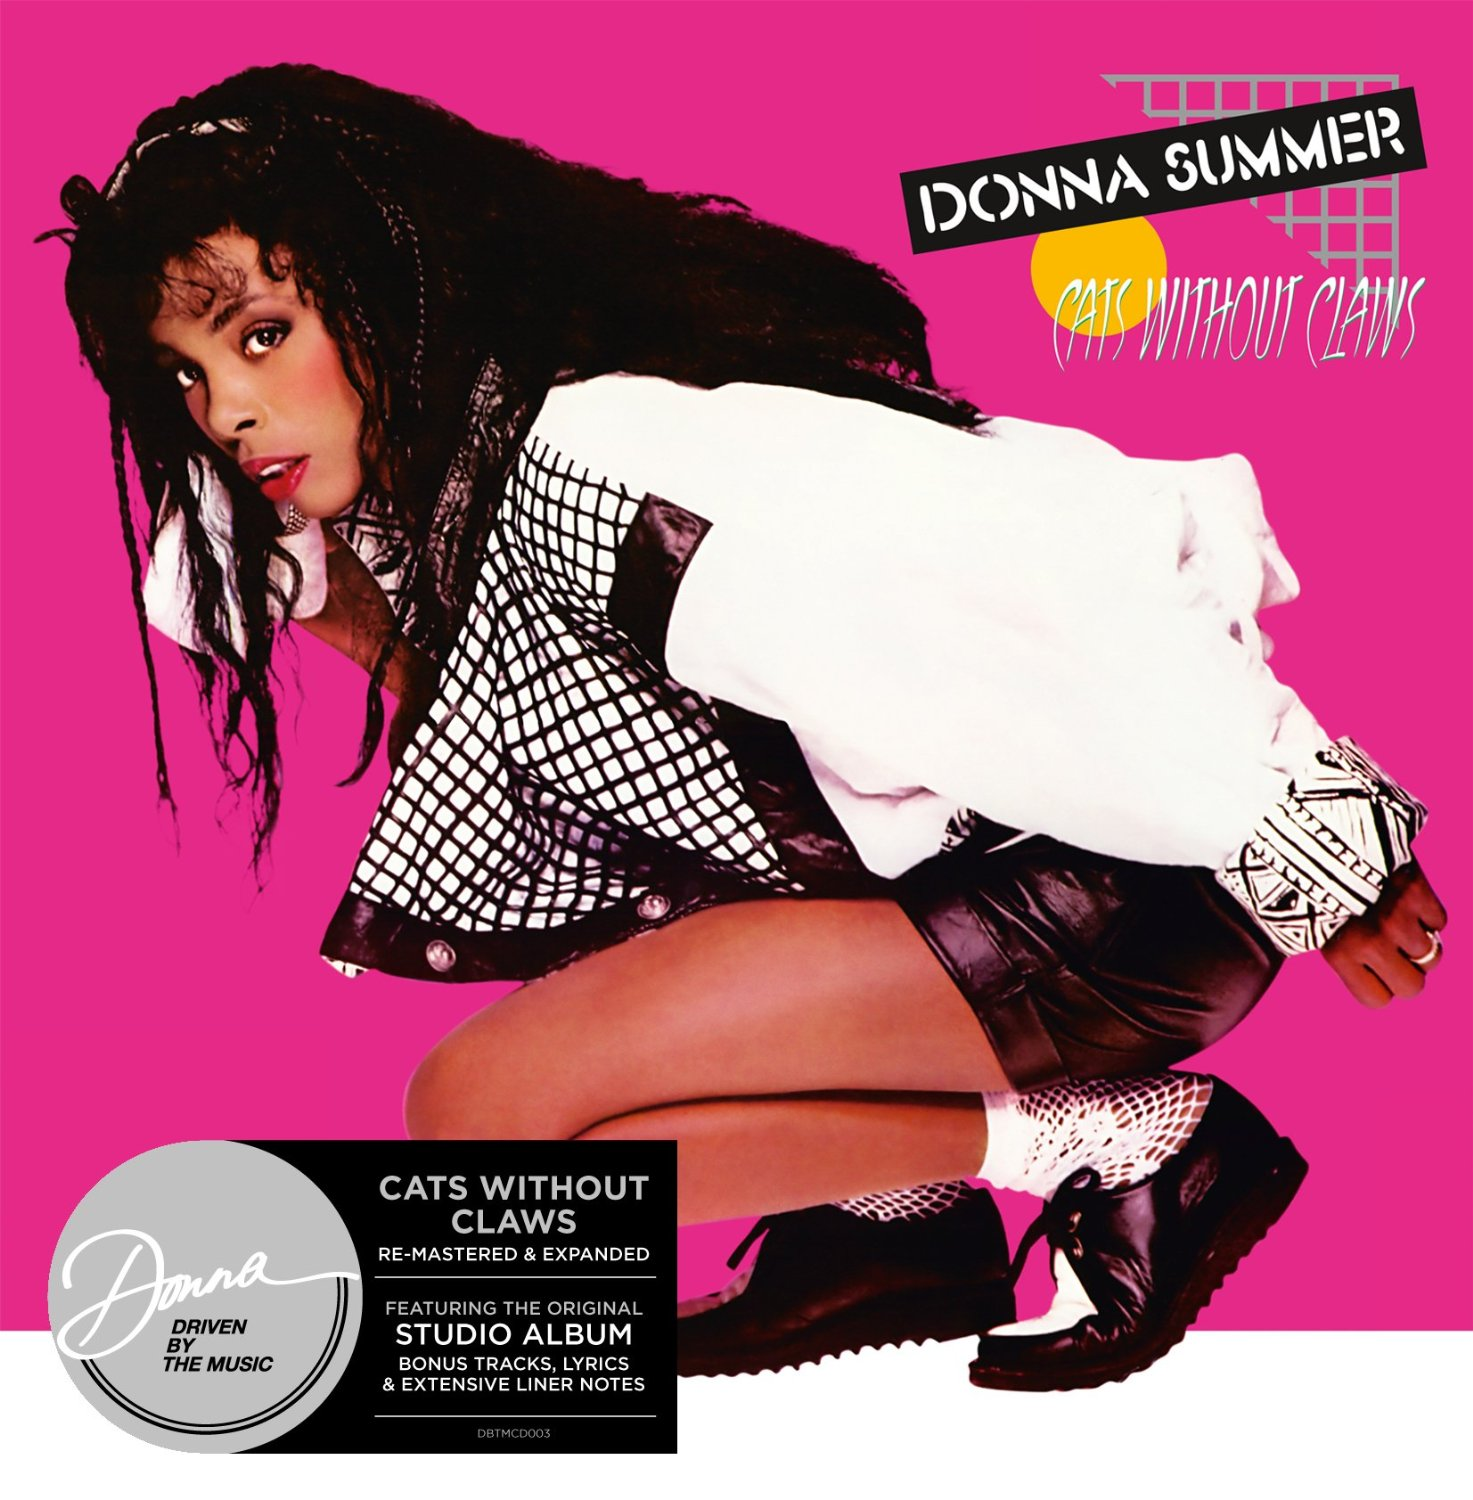 DONNA SUMMER - CATS WITHOUT CLAWS (CD)